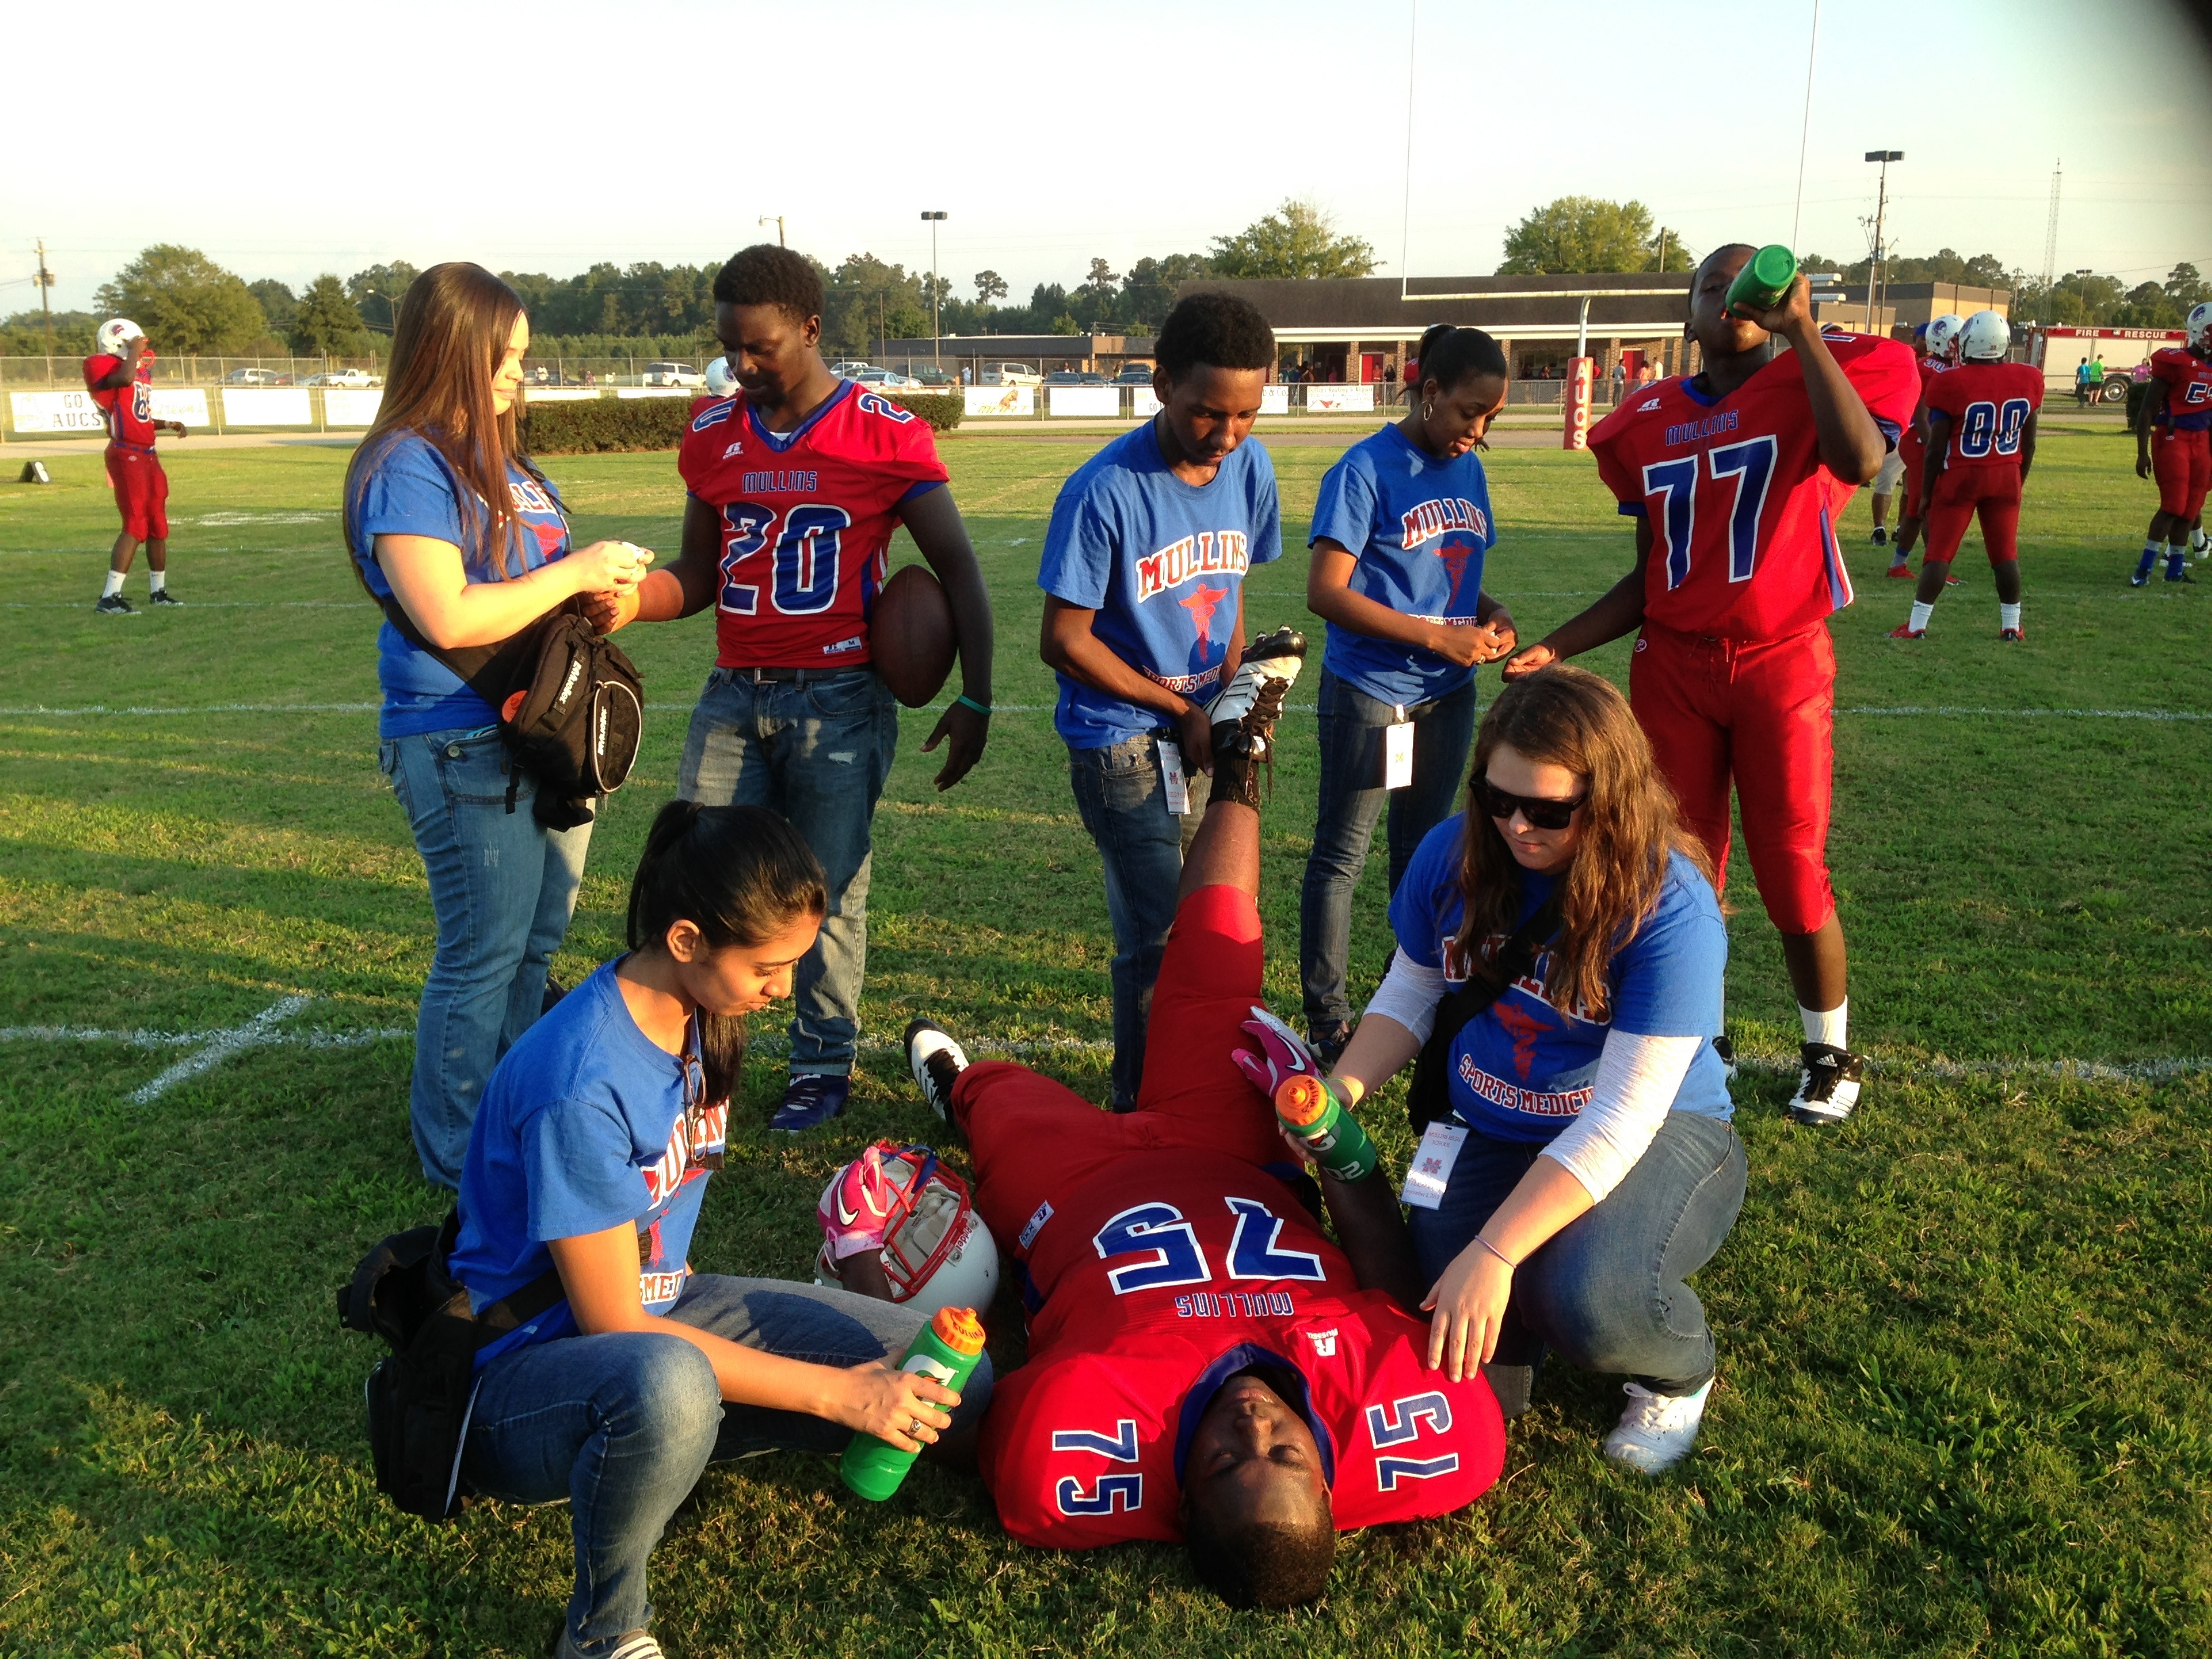 8dada899ce0a Student Athletic Training Aides Looking Great While Helping The Football  Team T-Shirt Photo